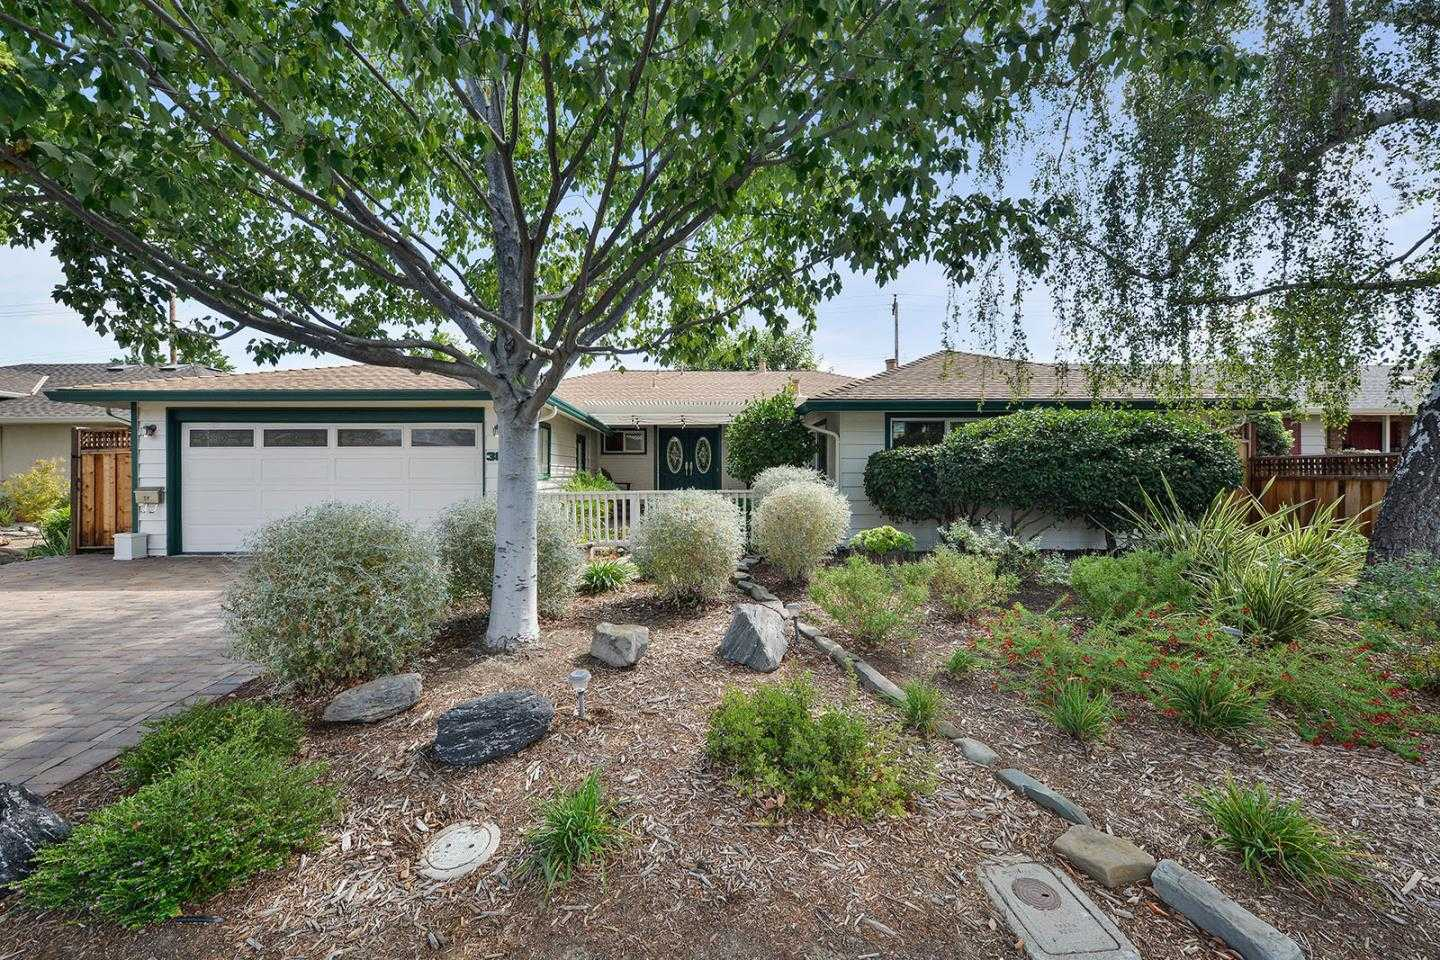 $1,699,000 - 3Br/3Ba -  for Sale in Santa Clara